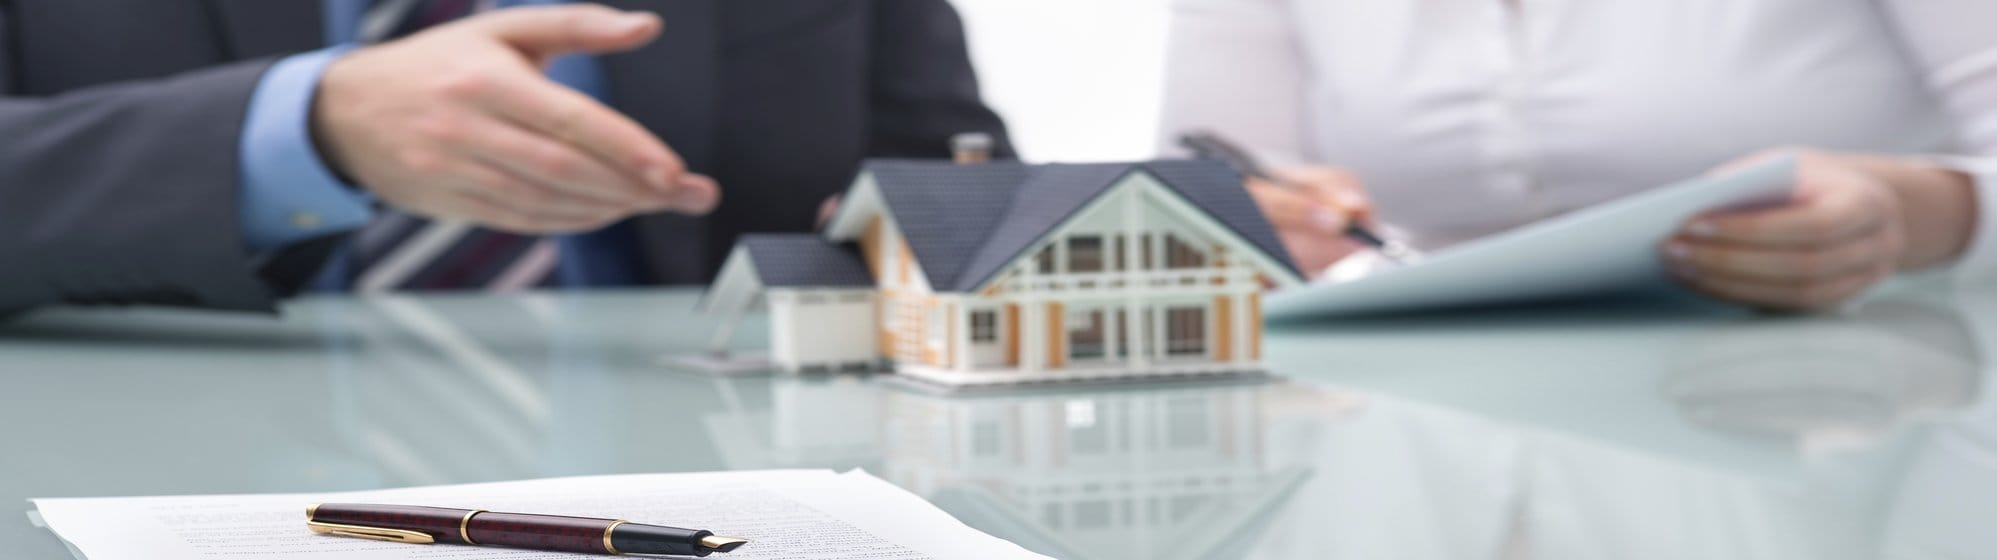 Refinancing your home loan is easy with our professionals' help.